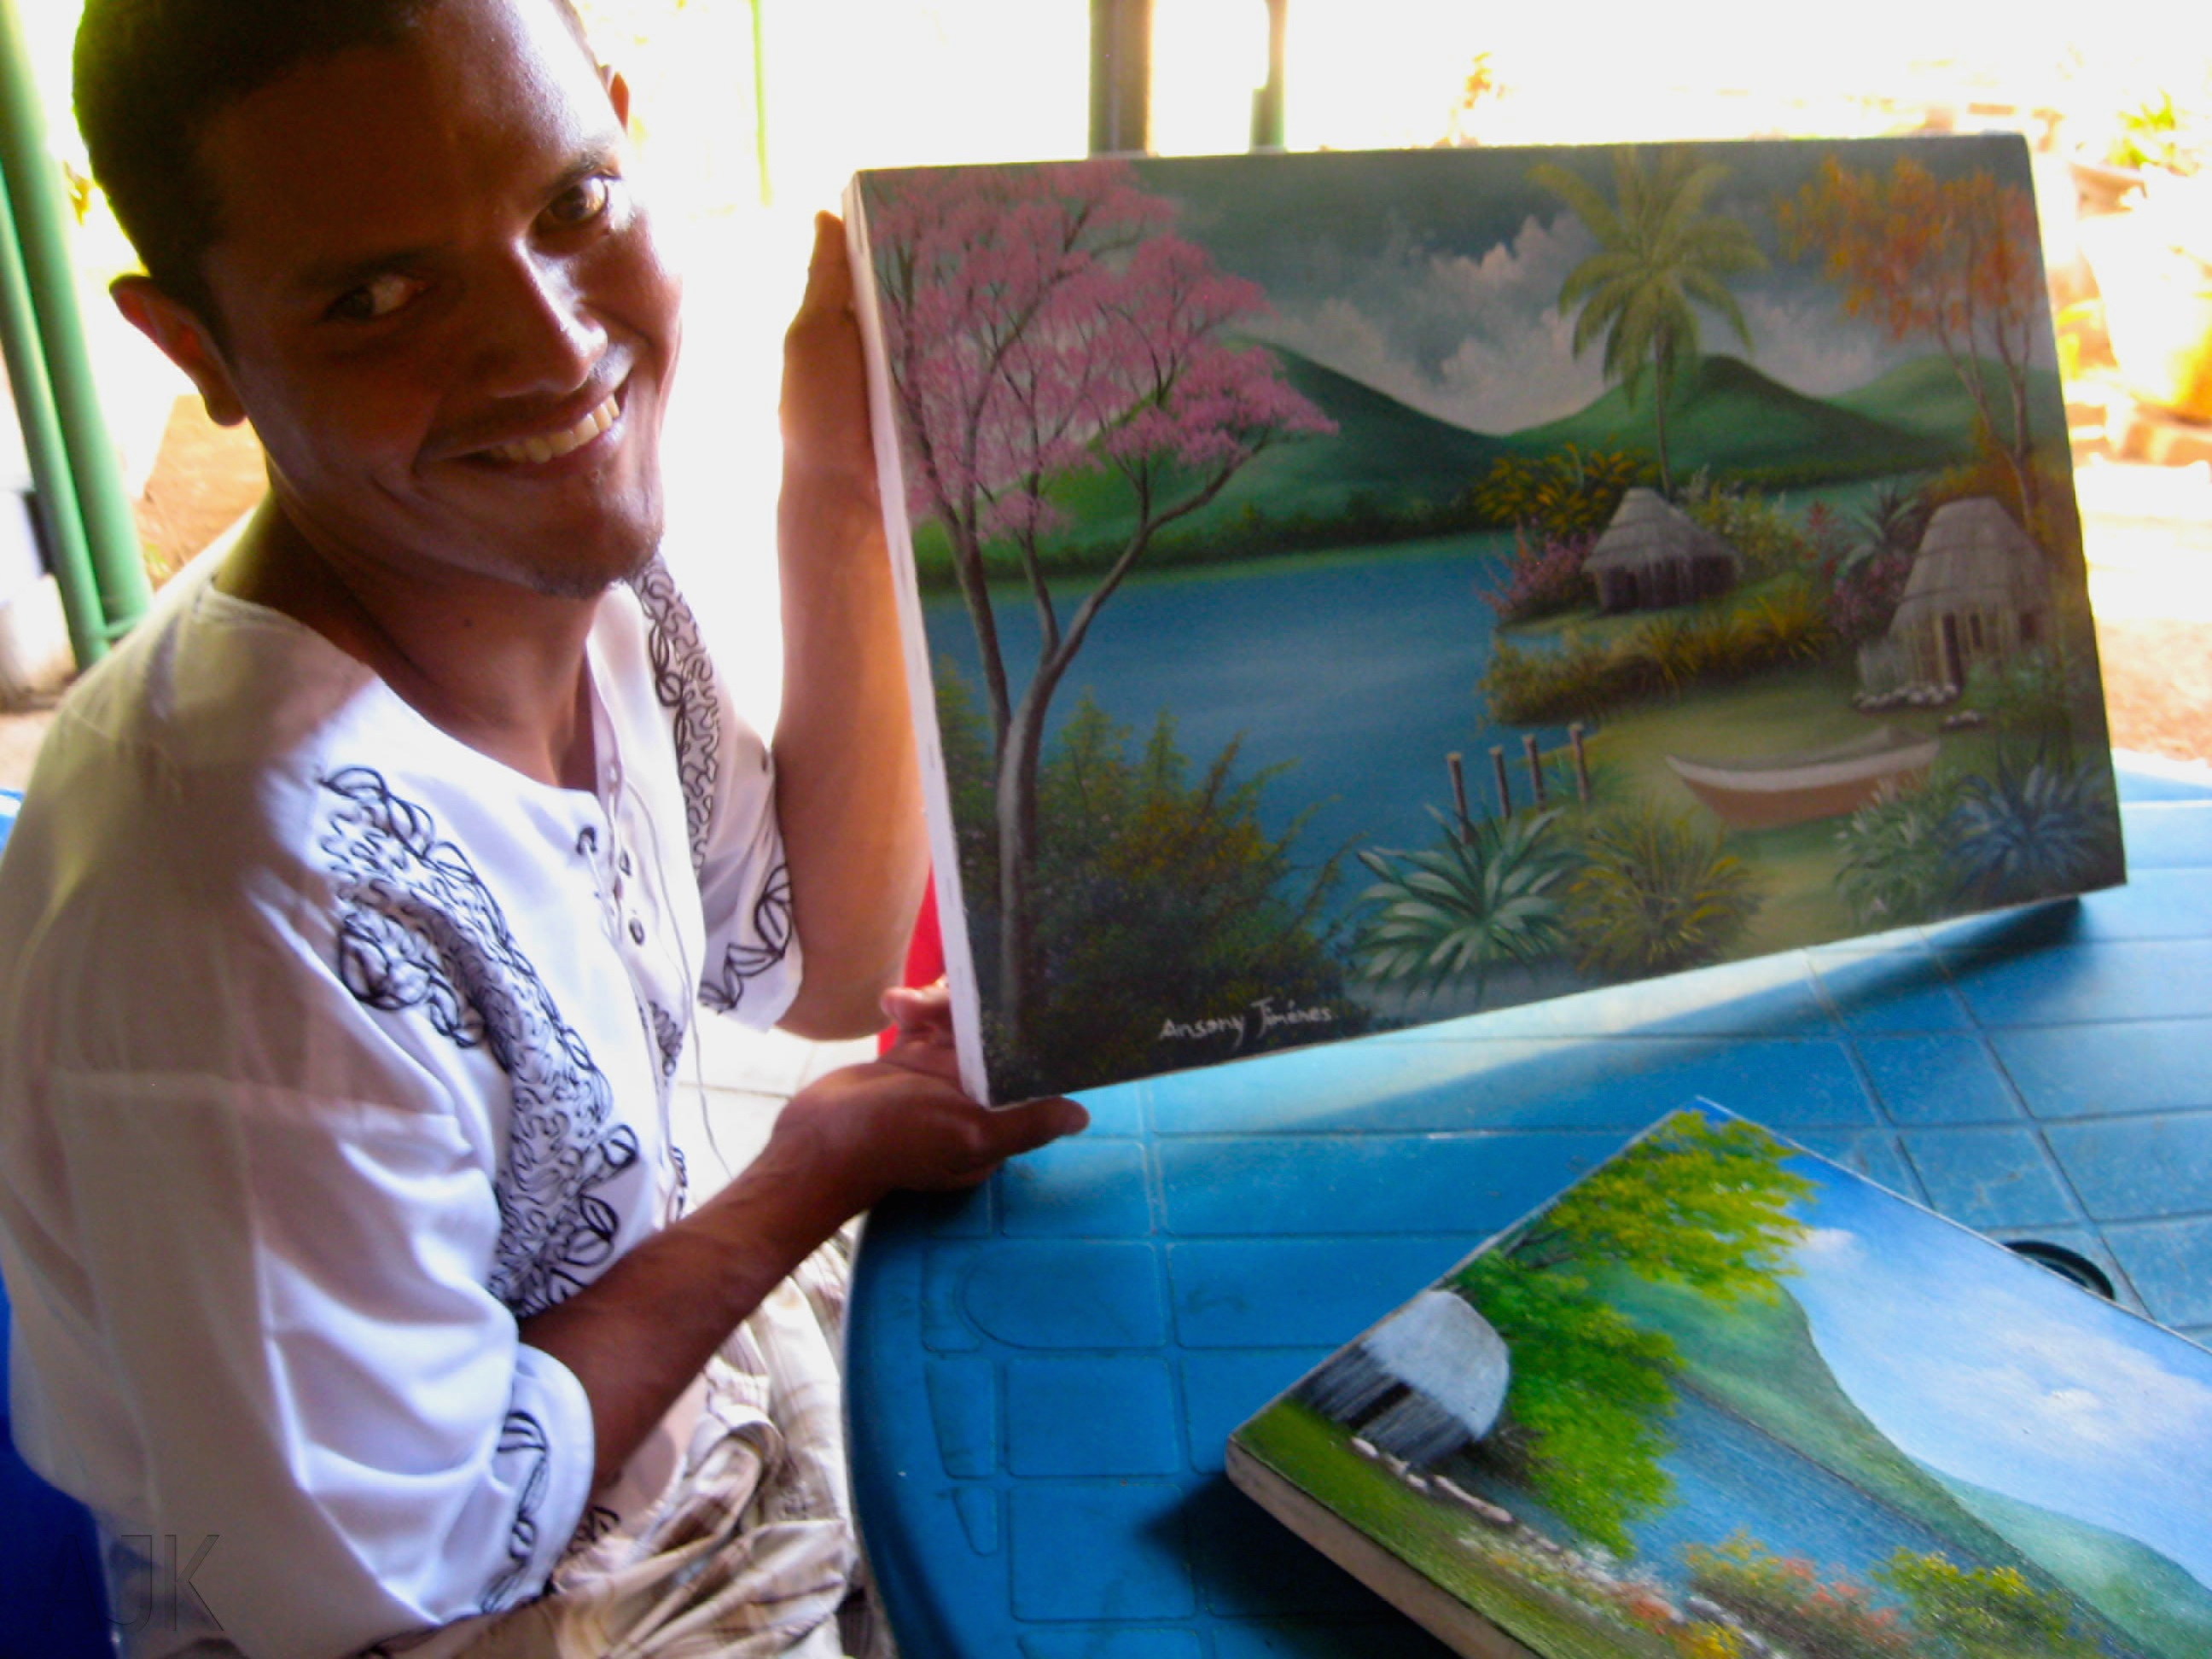 ... completing the Basic Adult Education course, and taking painting classes ...